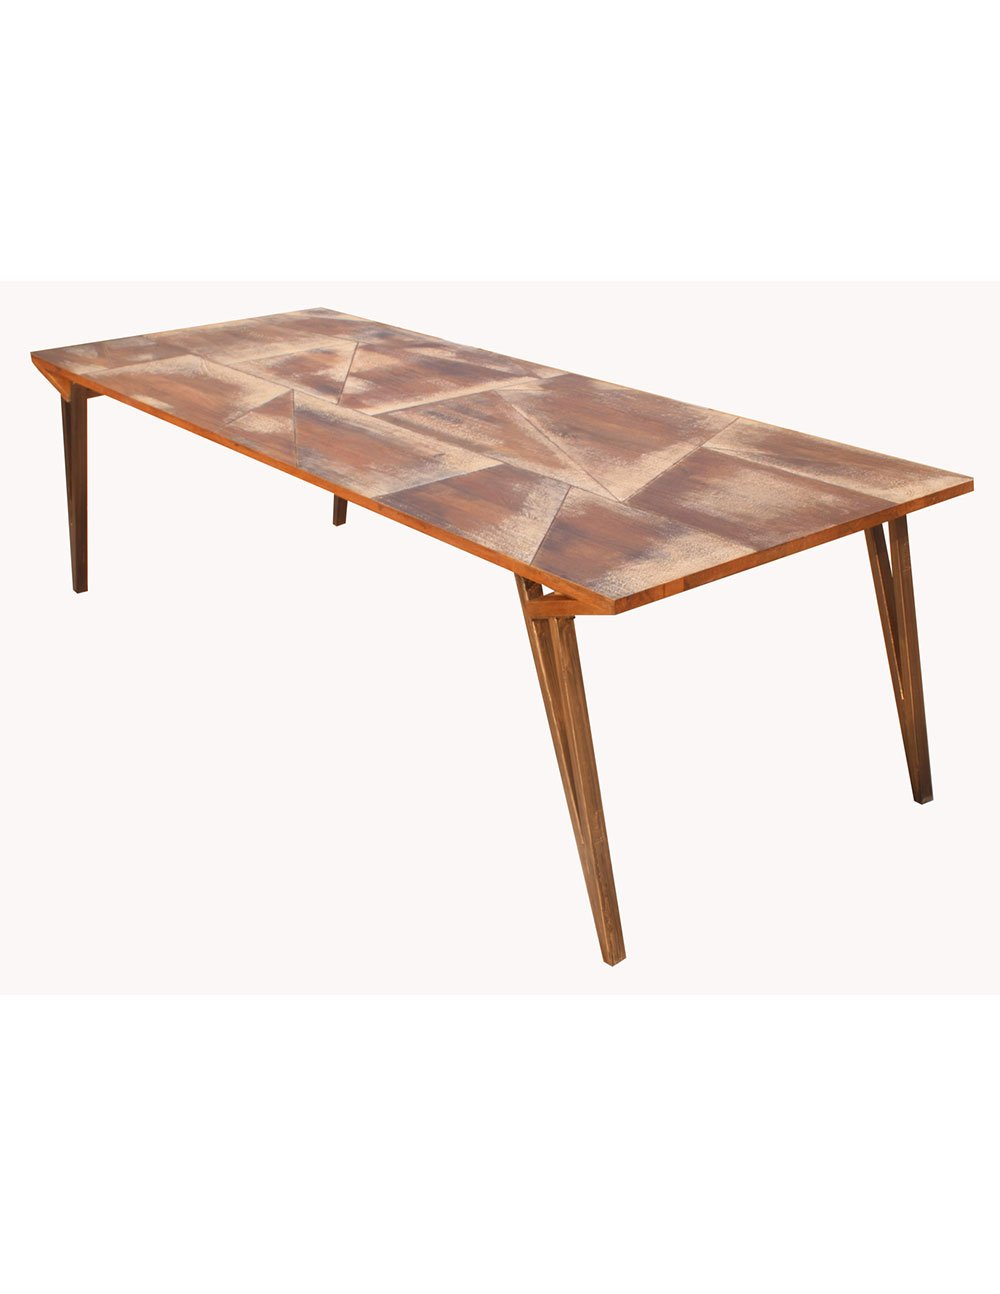 Stone Age Dining Table 220Cm - decorstore